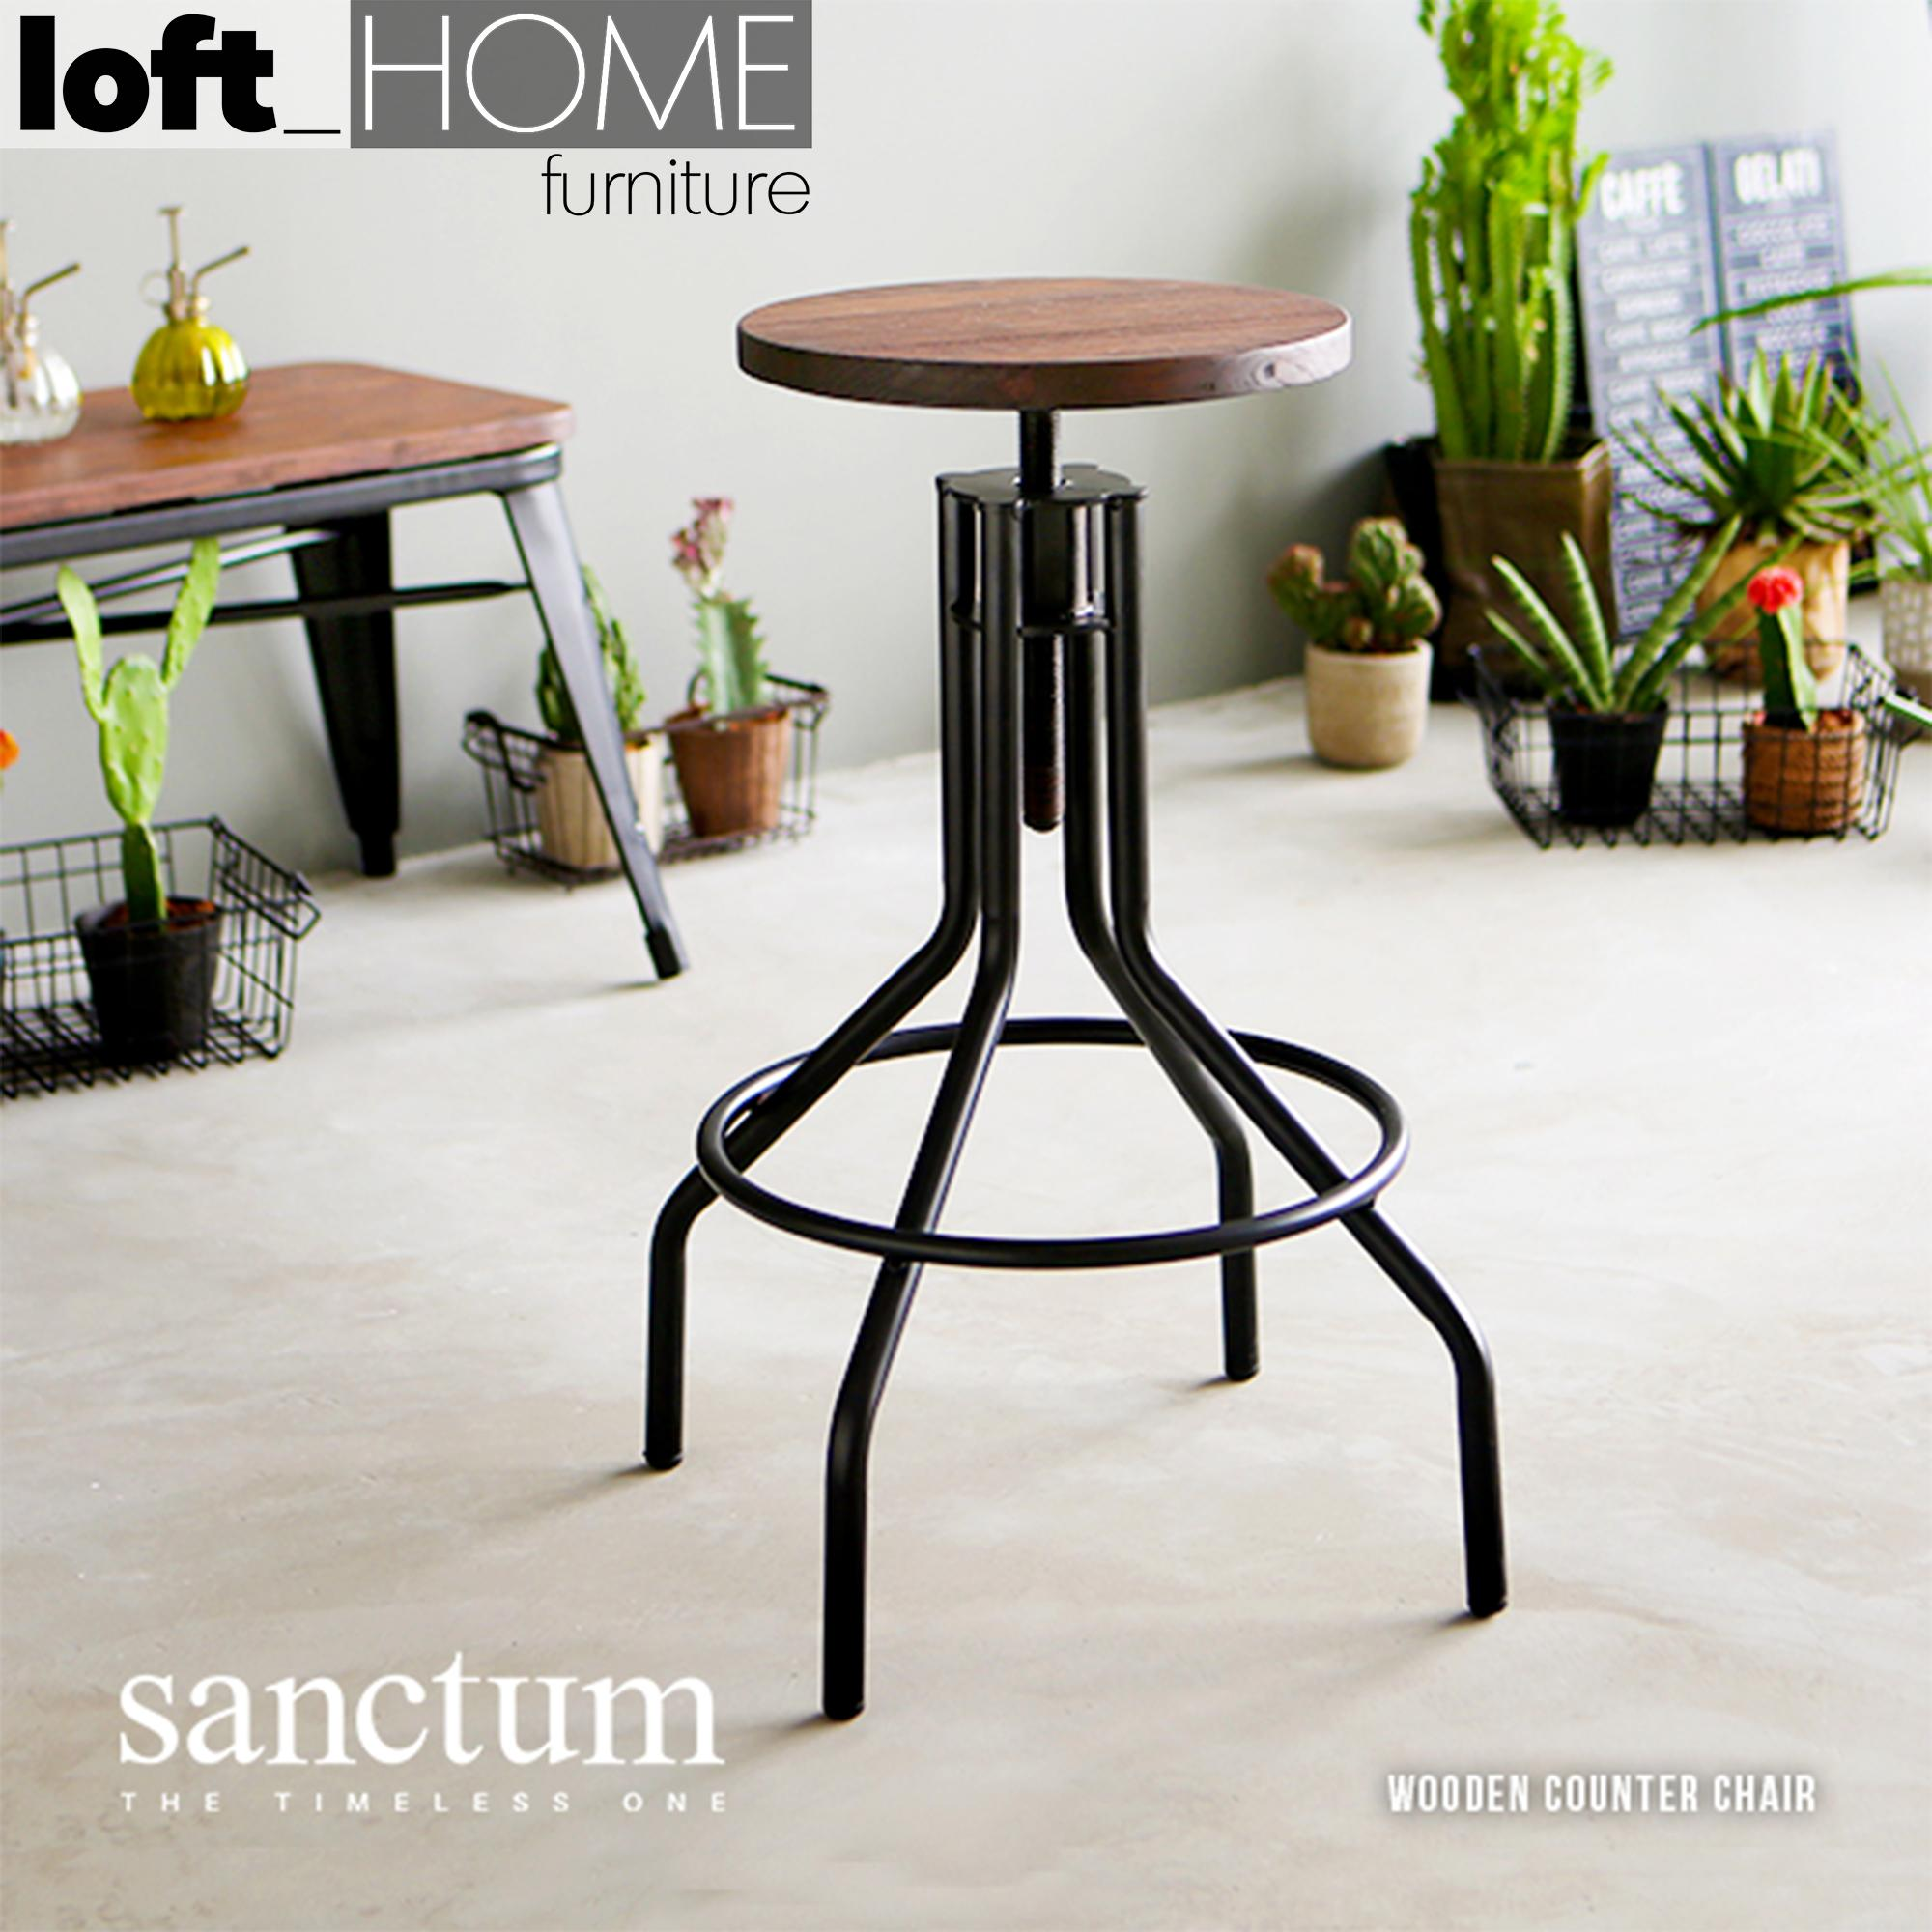 Height Adjustable Bar Stool - Sanctum